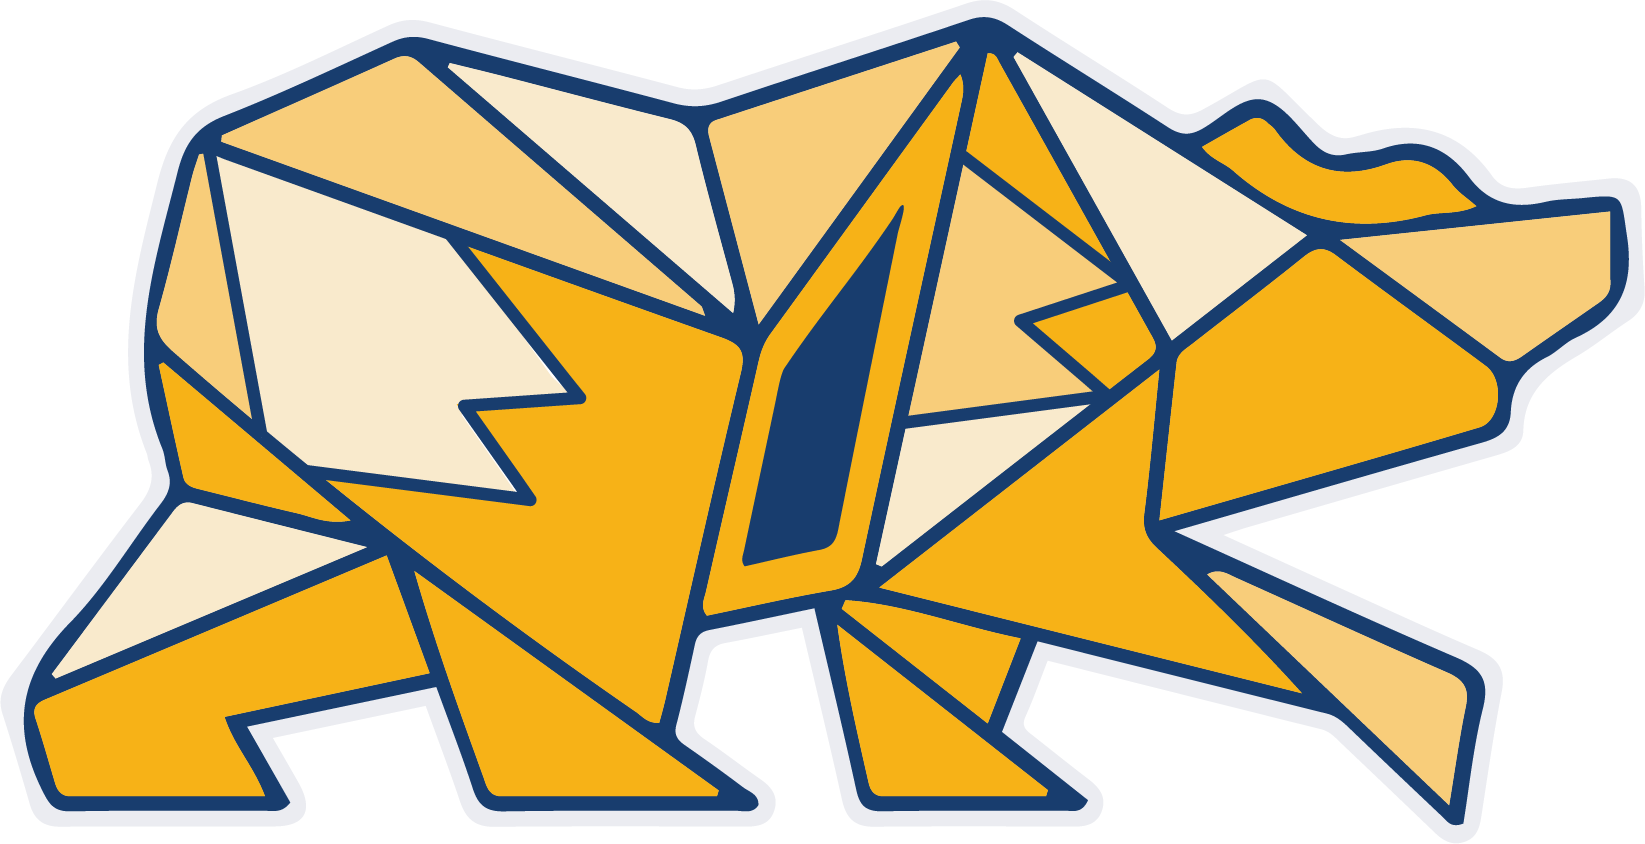 University of California Berkeley asuc logo